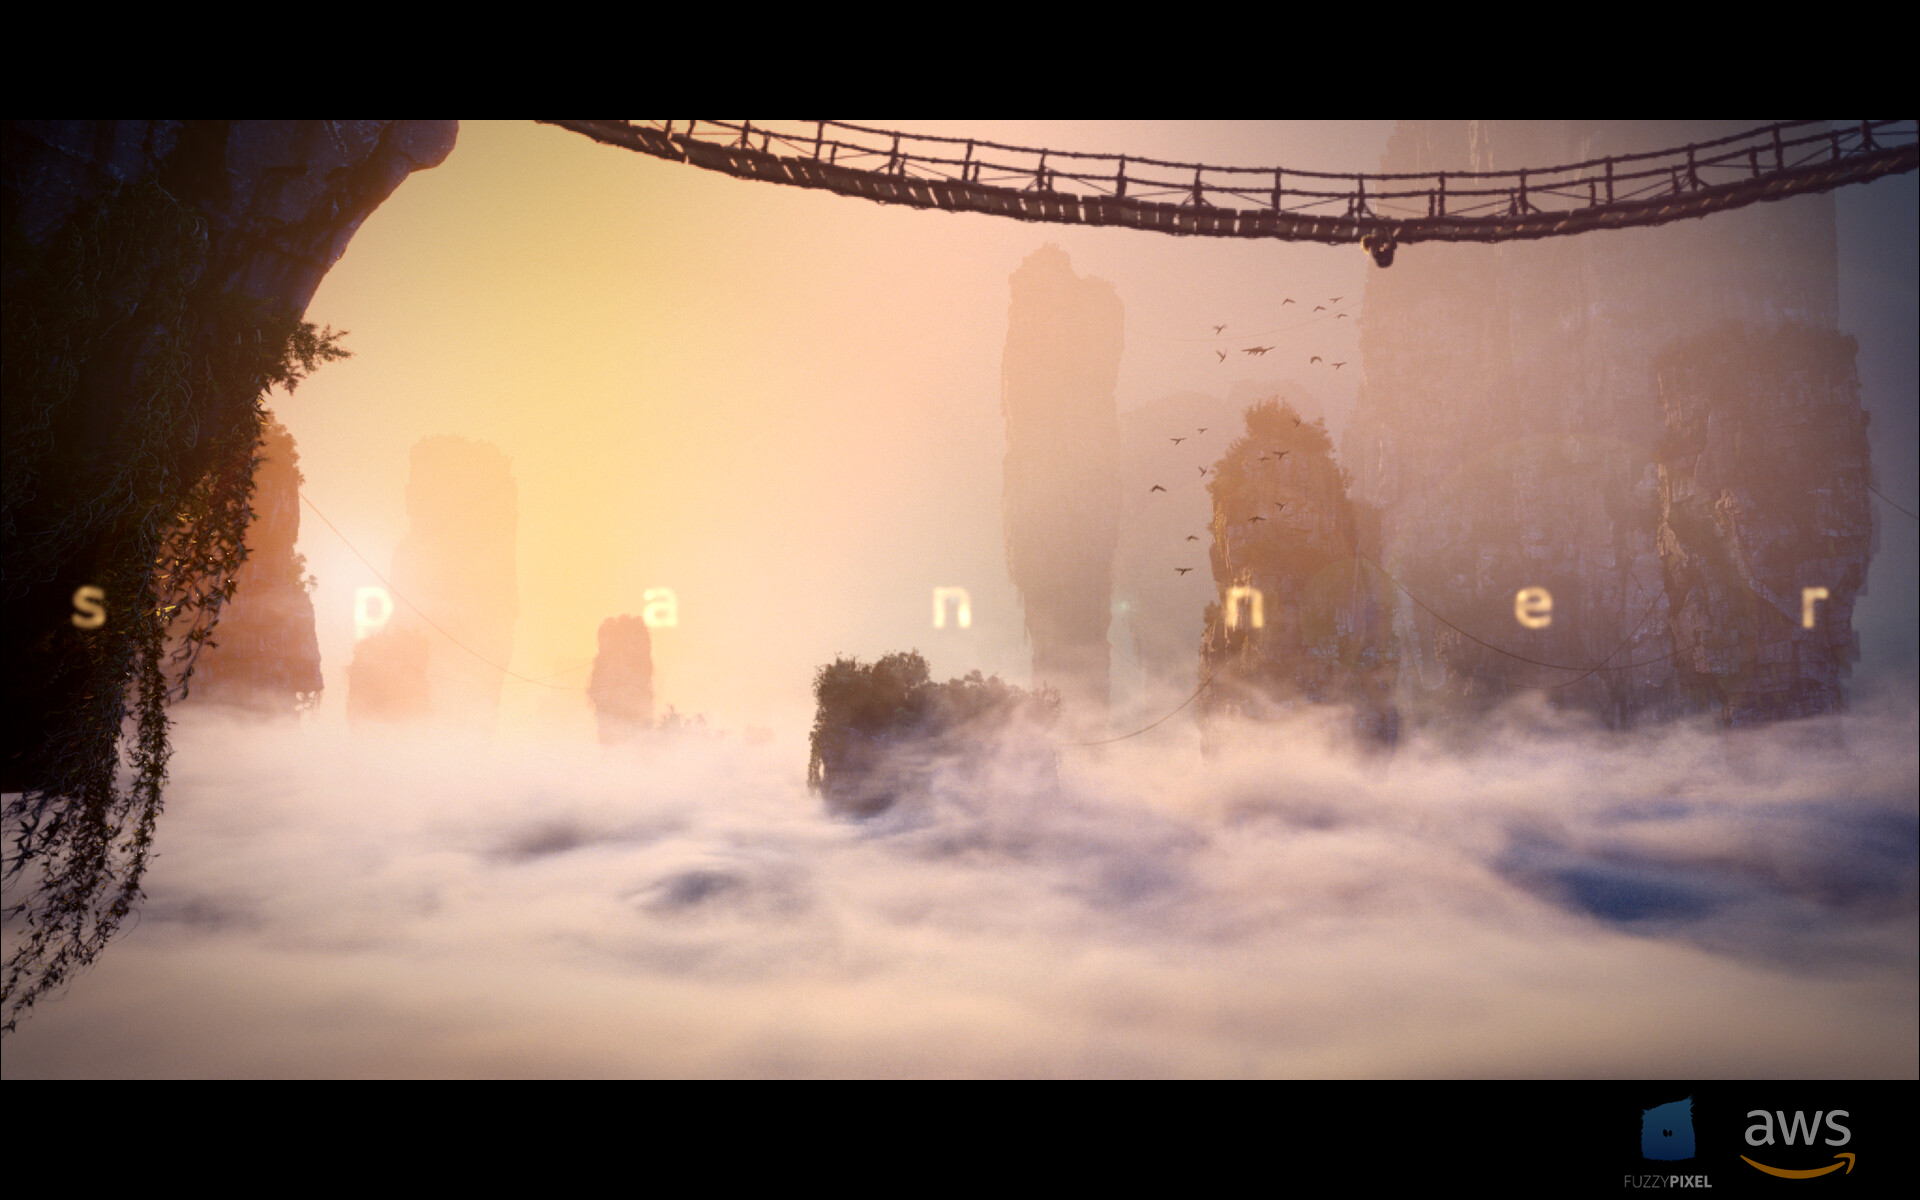 Opening title sequence for Spanner